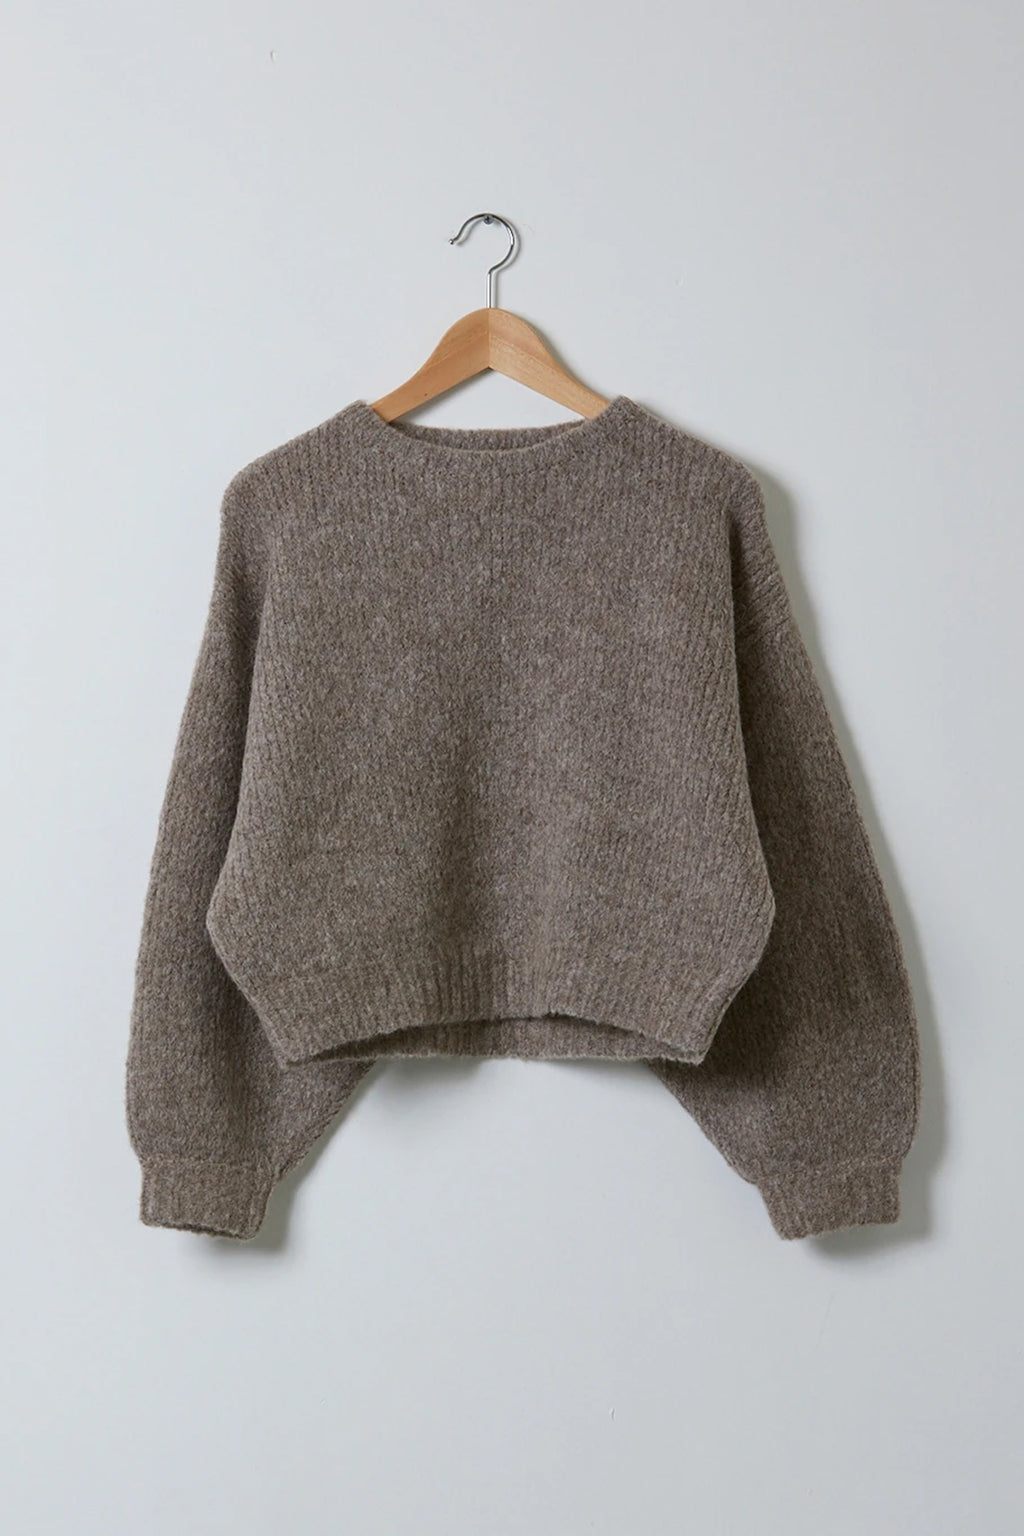 Atelier Delphine Balloon Sleeve Sweater in Deer